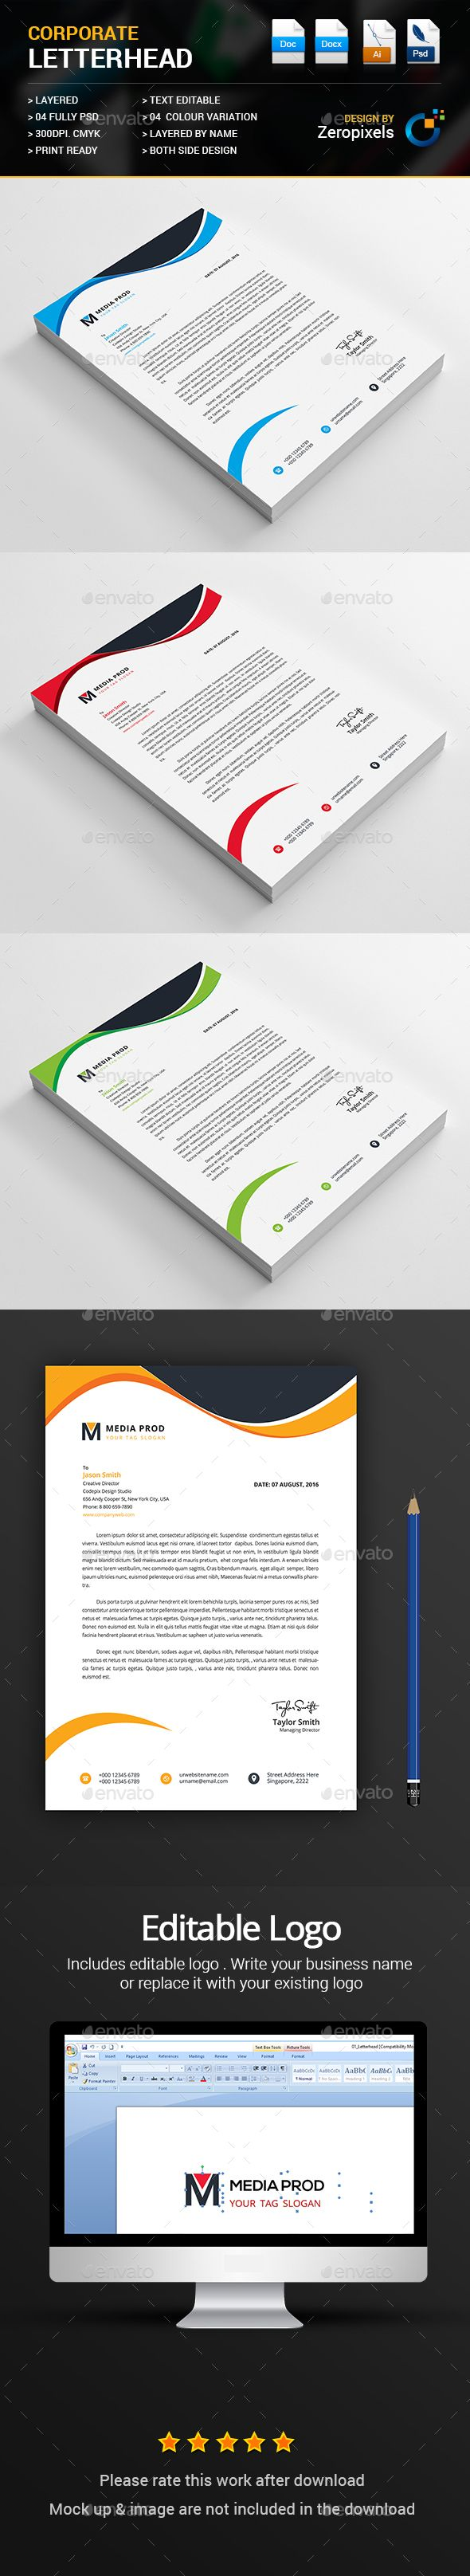 Offer letter format in word free download best of corporate download letterhead alan noscrapleftbehind co download letterhead official letterhead examples letterhead letterheads sample letter head design sample free spiritdancerdesigns Choice Image